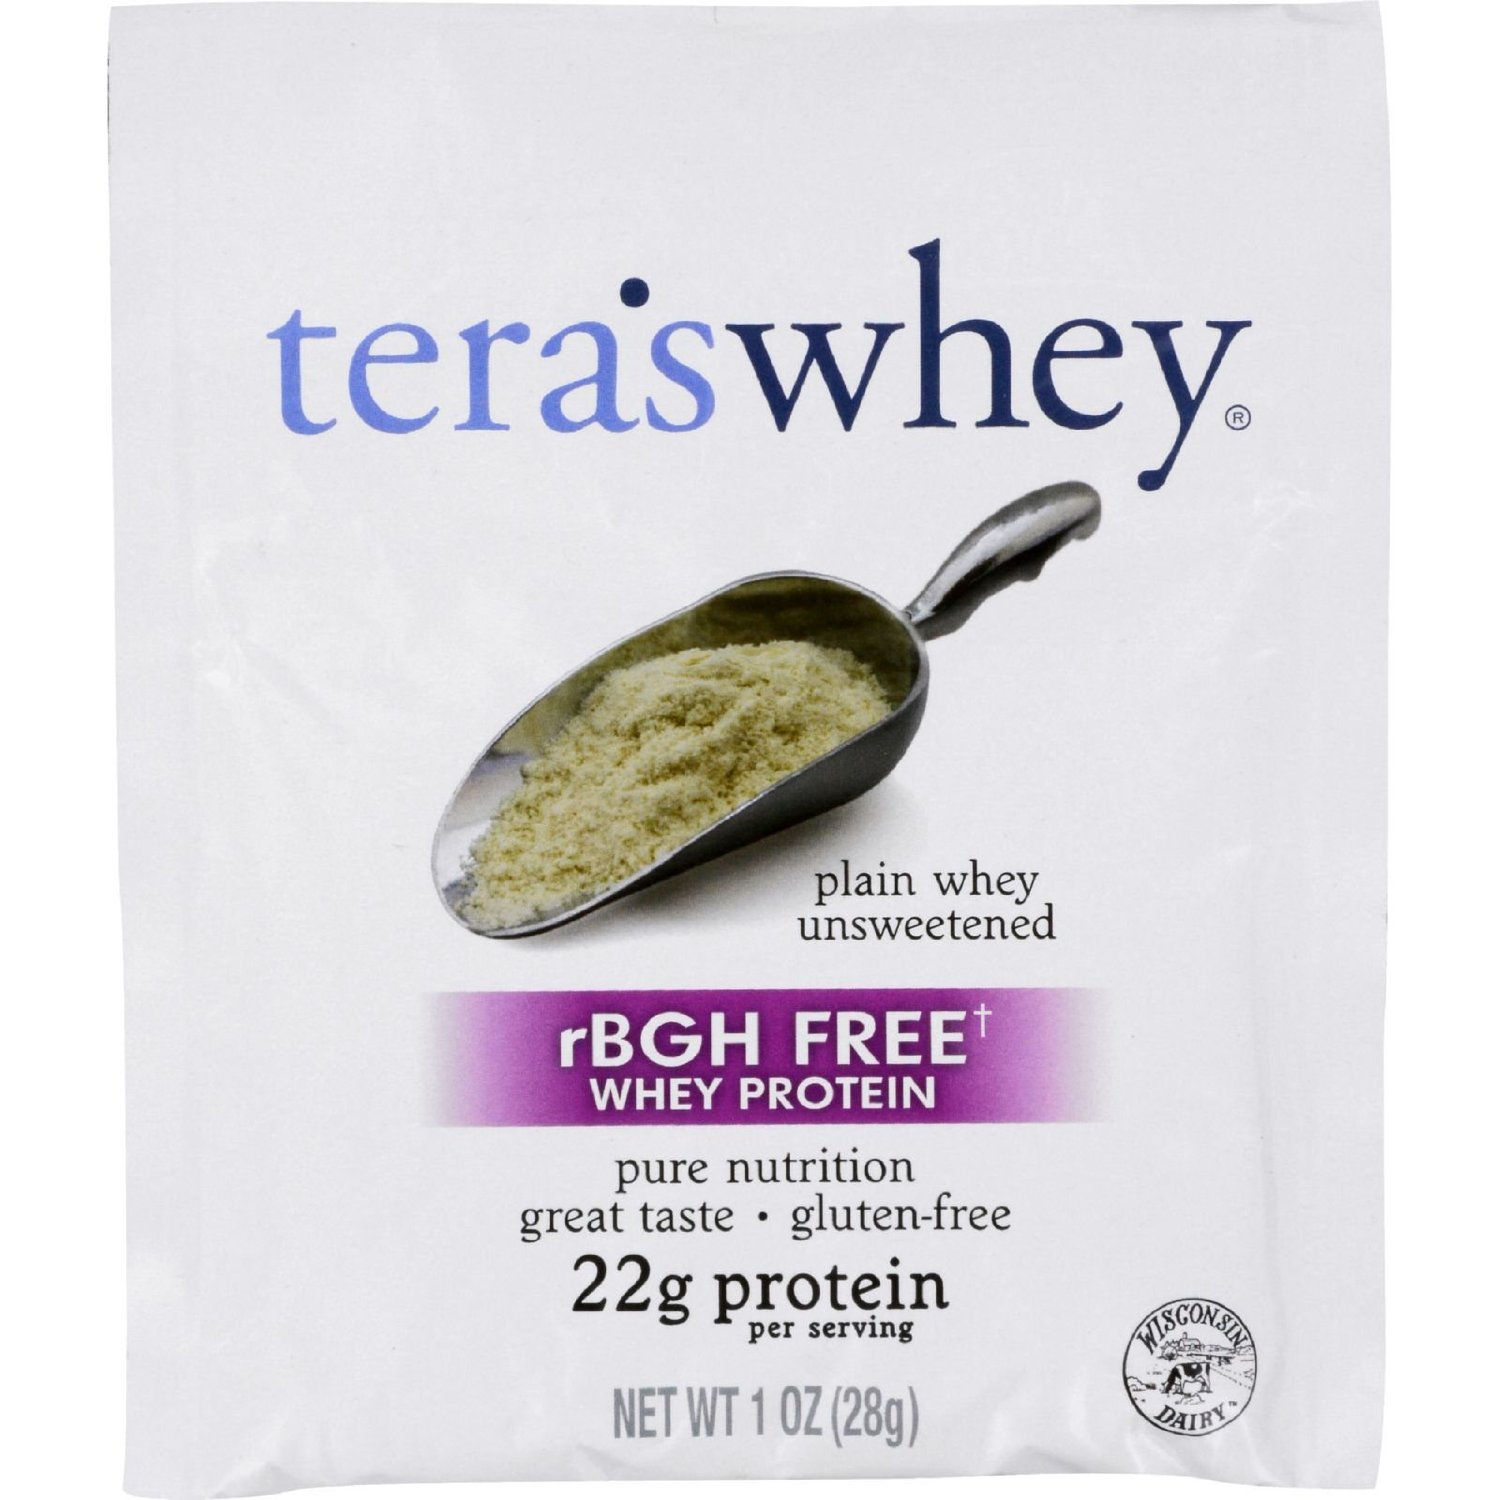 Image of Plain Cow Whey rBGH Free (Unsweetened) 1oz Counter Display